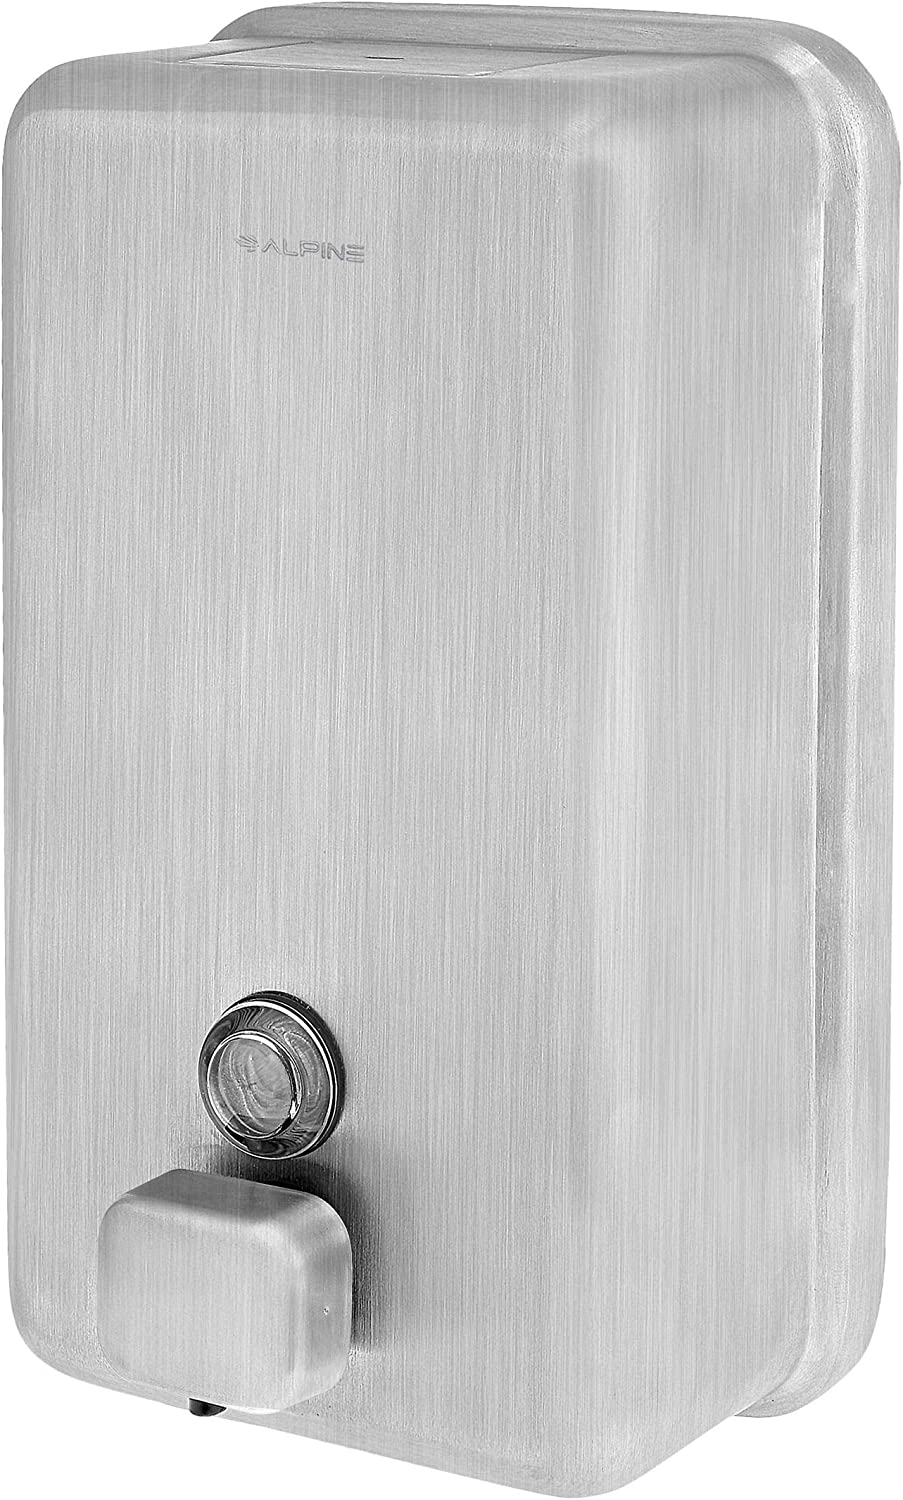 Alpine Industries Manual Stainless Steel Liquid Soap Dispenser, Vertical – 40oz Capacity - Rust Proof Wall Mounted Commercial Handsoap Holder for Office Home & Hotel